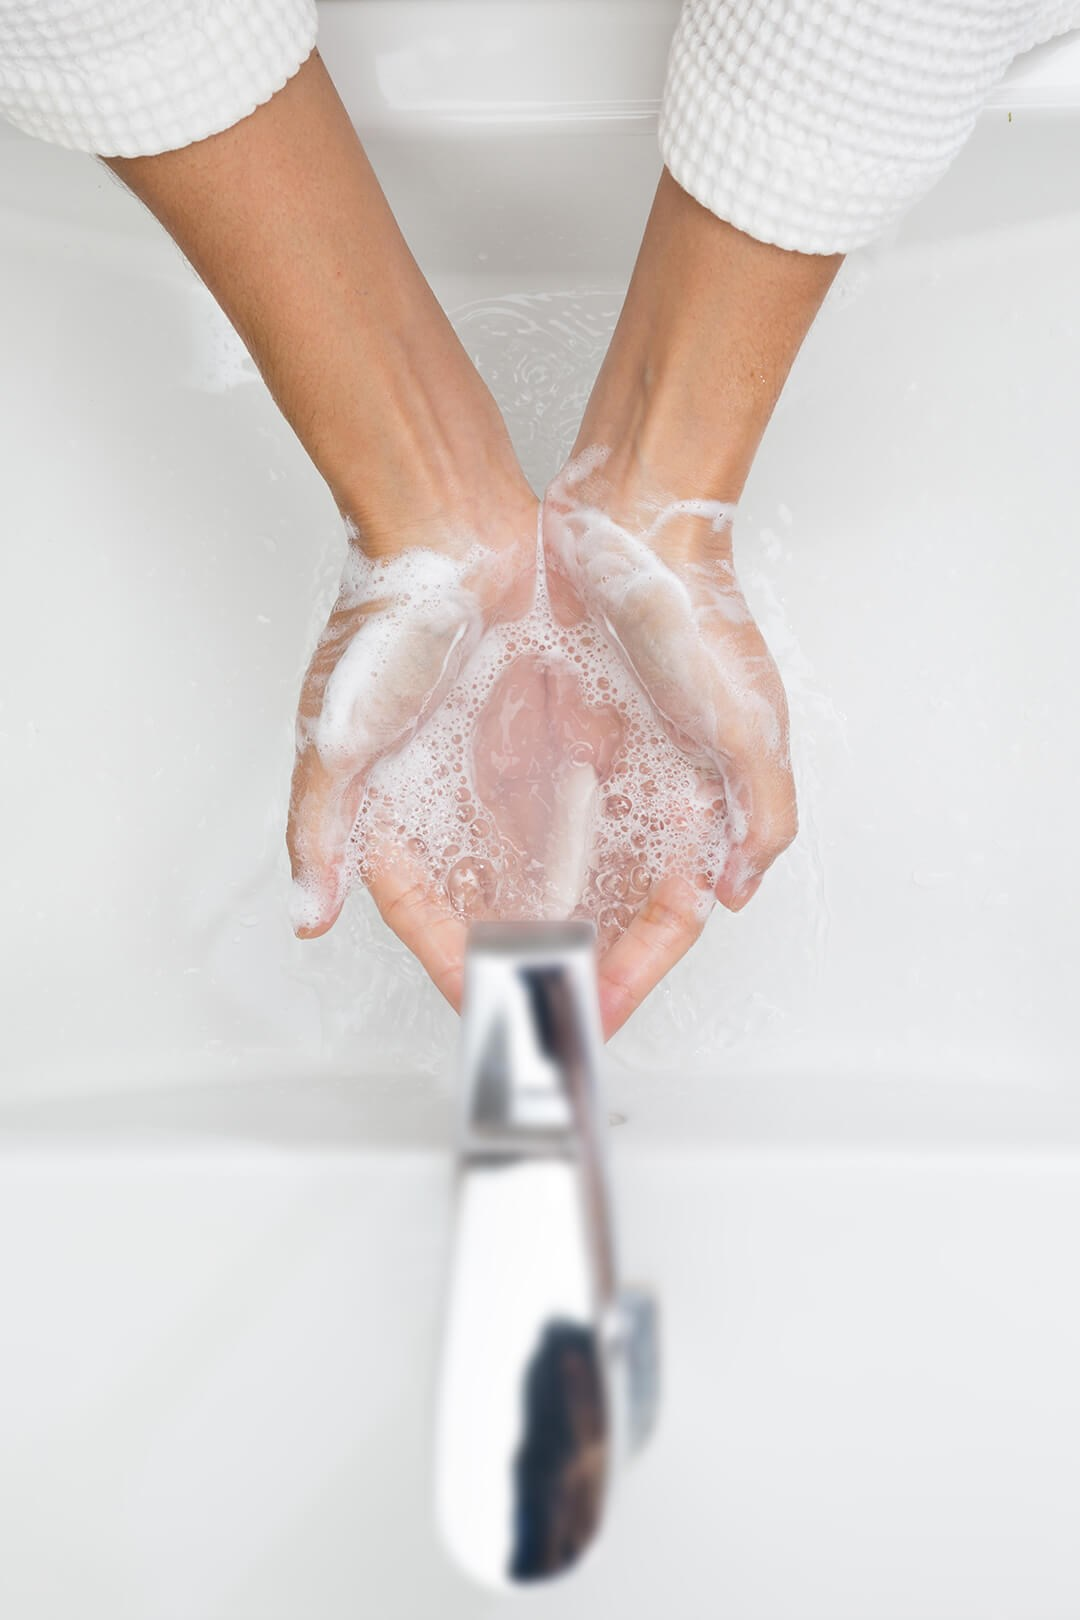 Soapy hands under tap